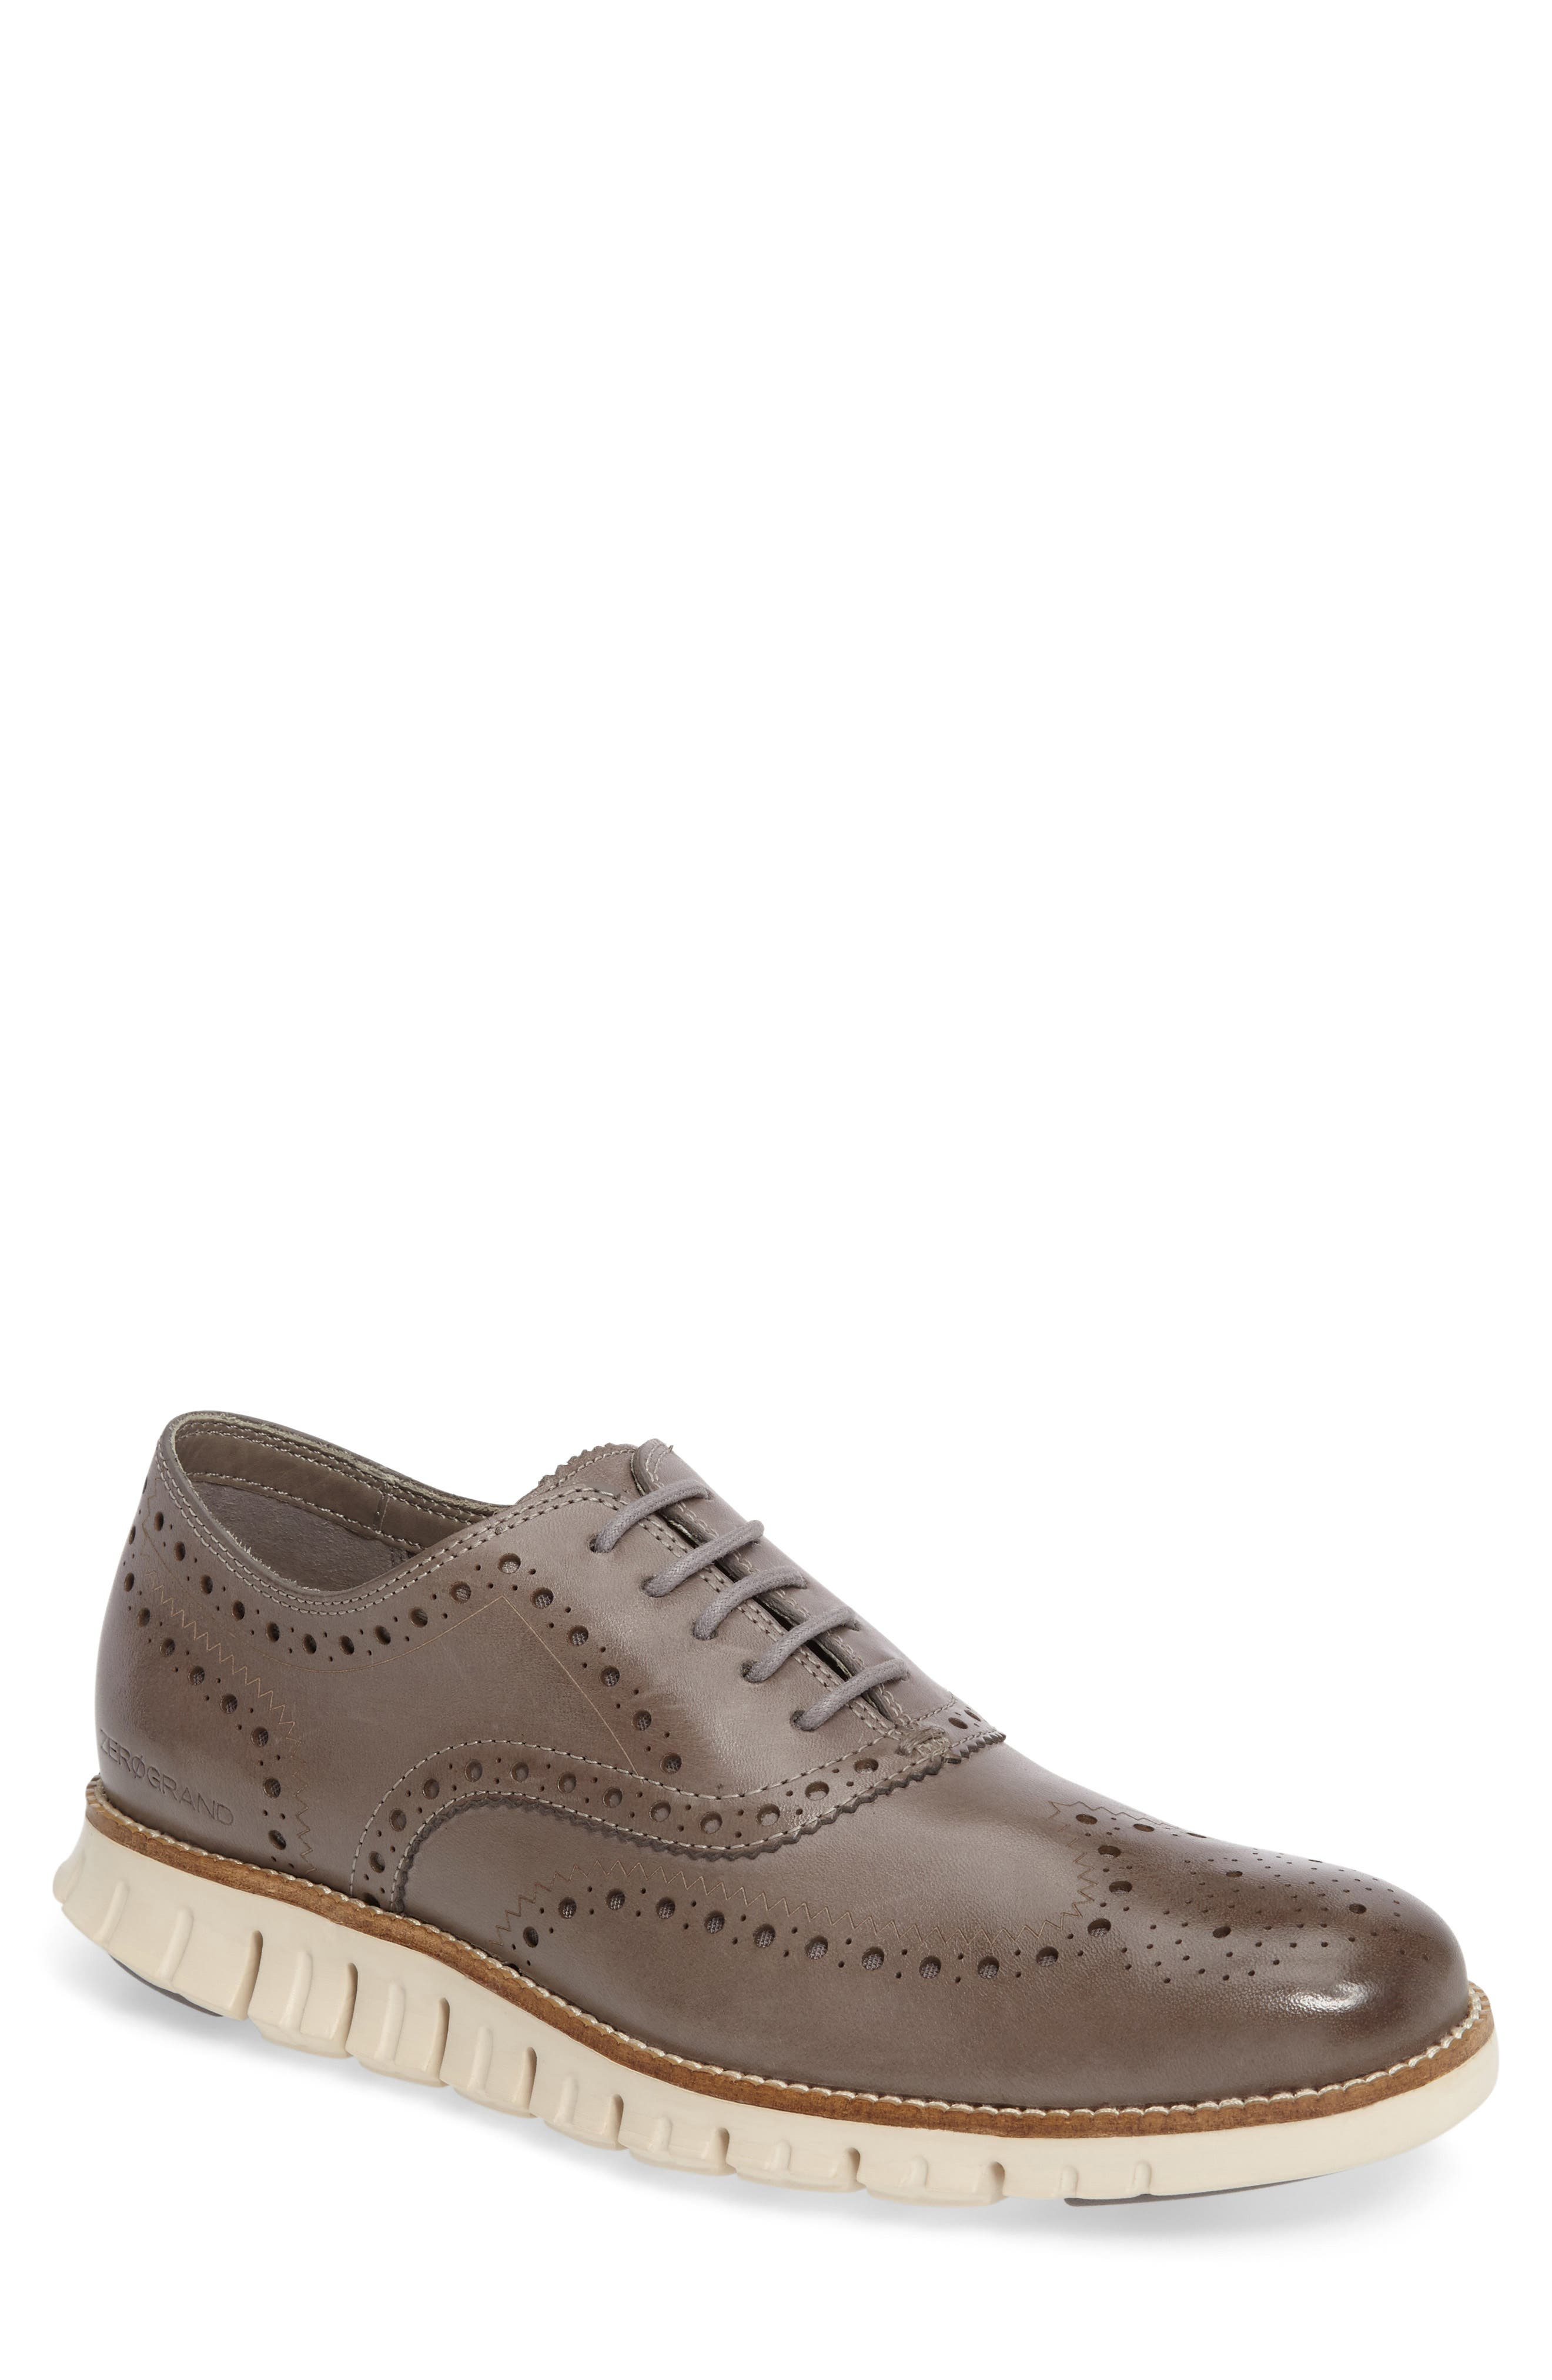 'ZeroGrand' Wingtip Oxford,                             Main thumbnail 1, color,                             IRONSTONE LEATHER